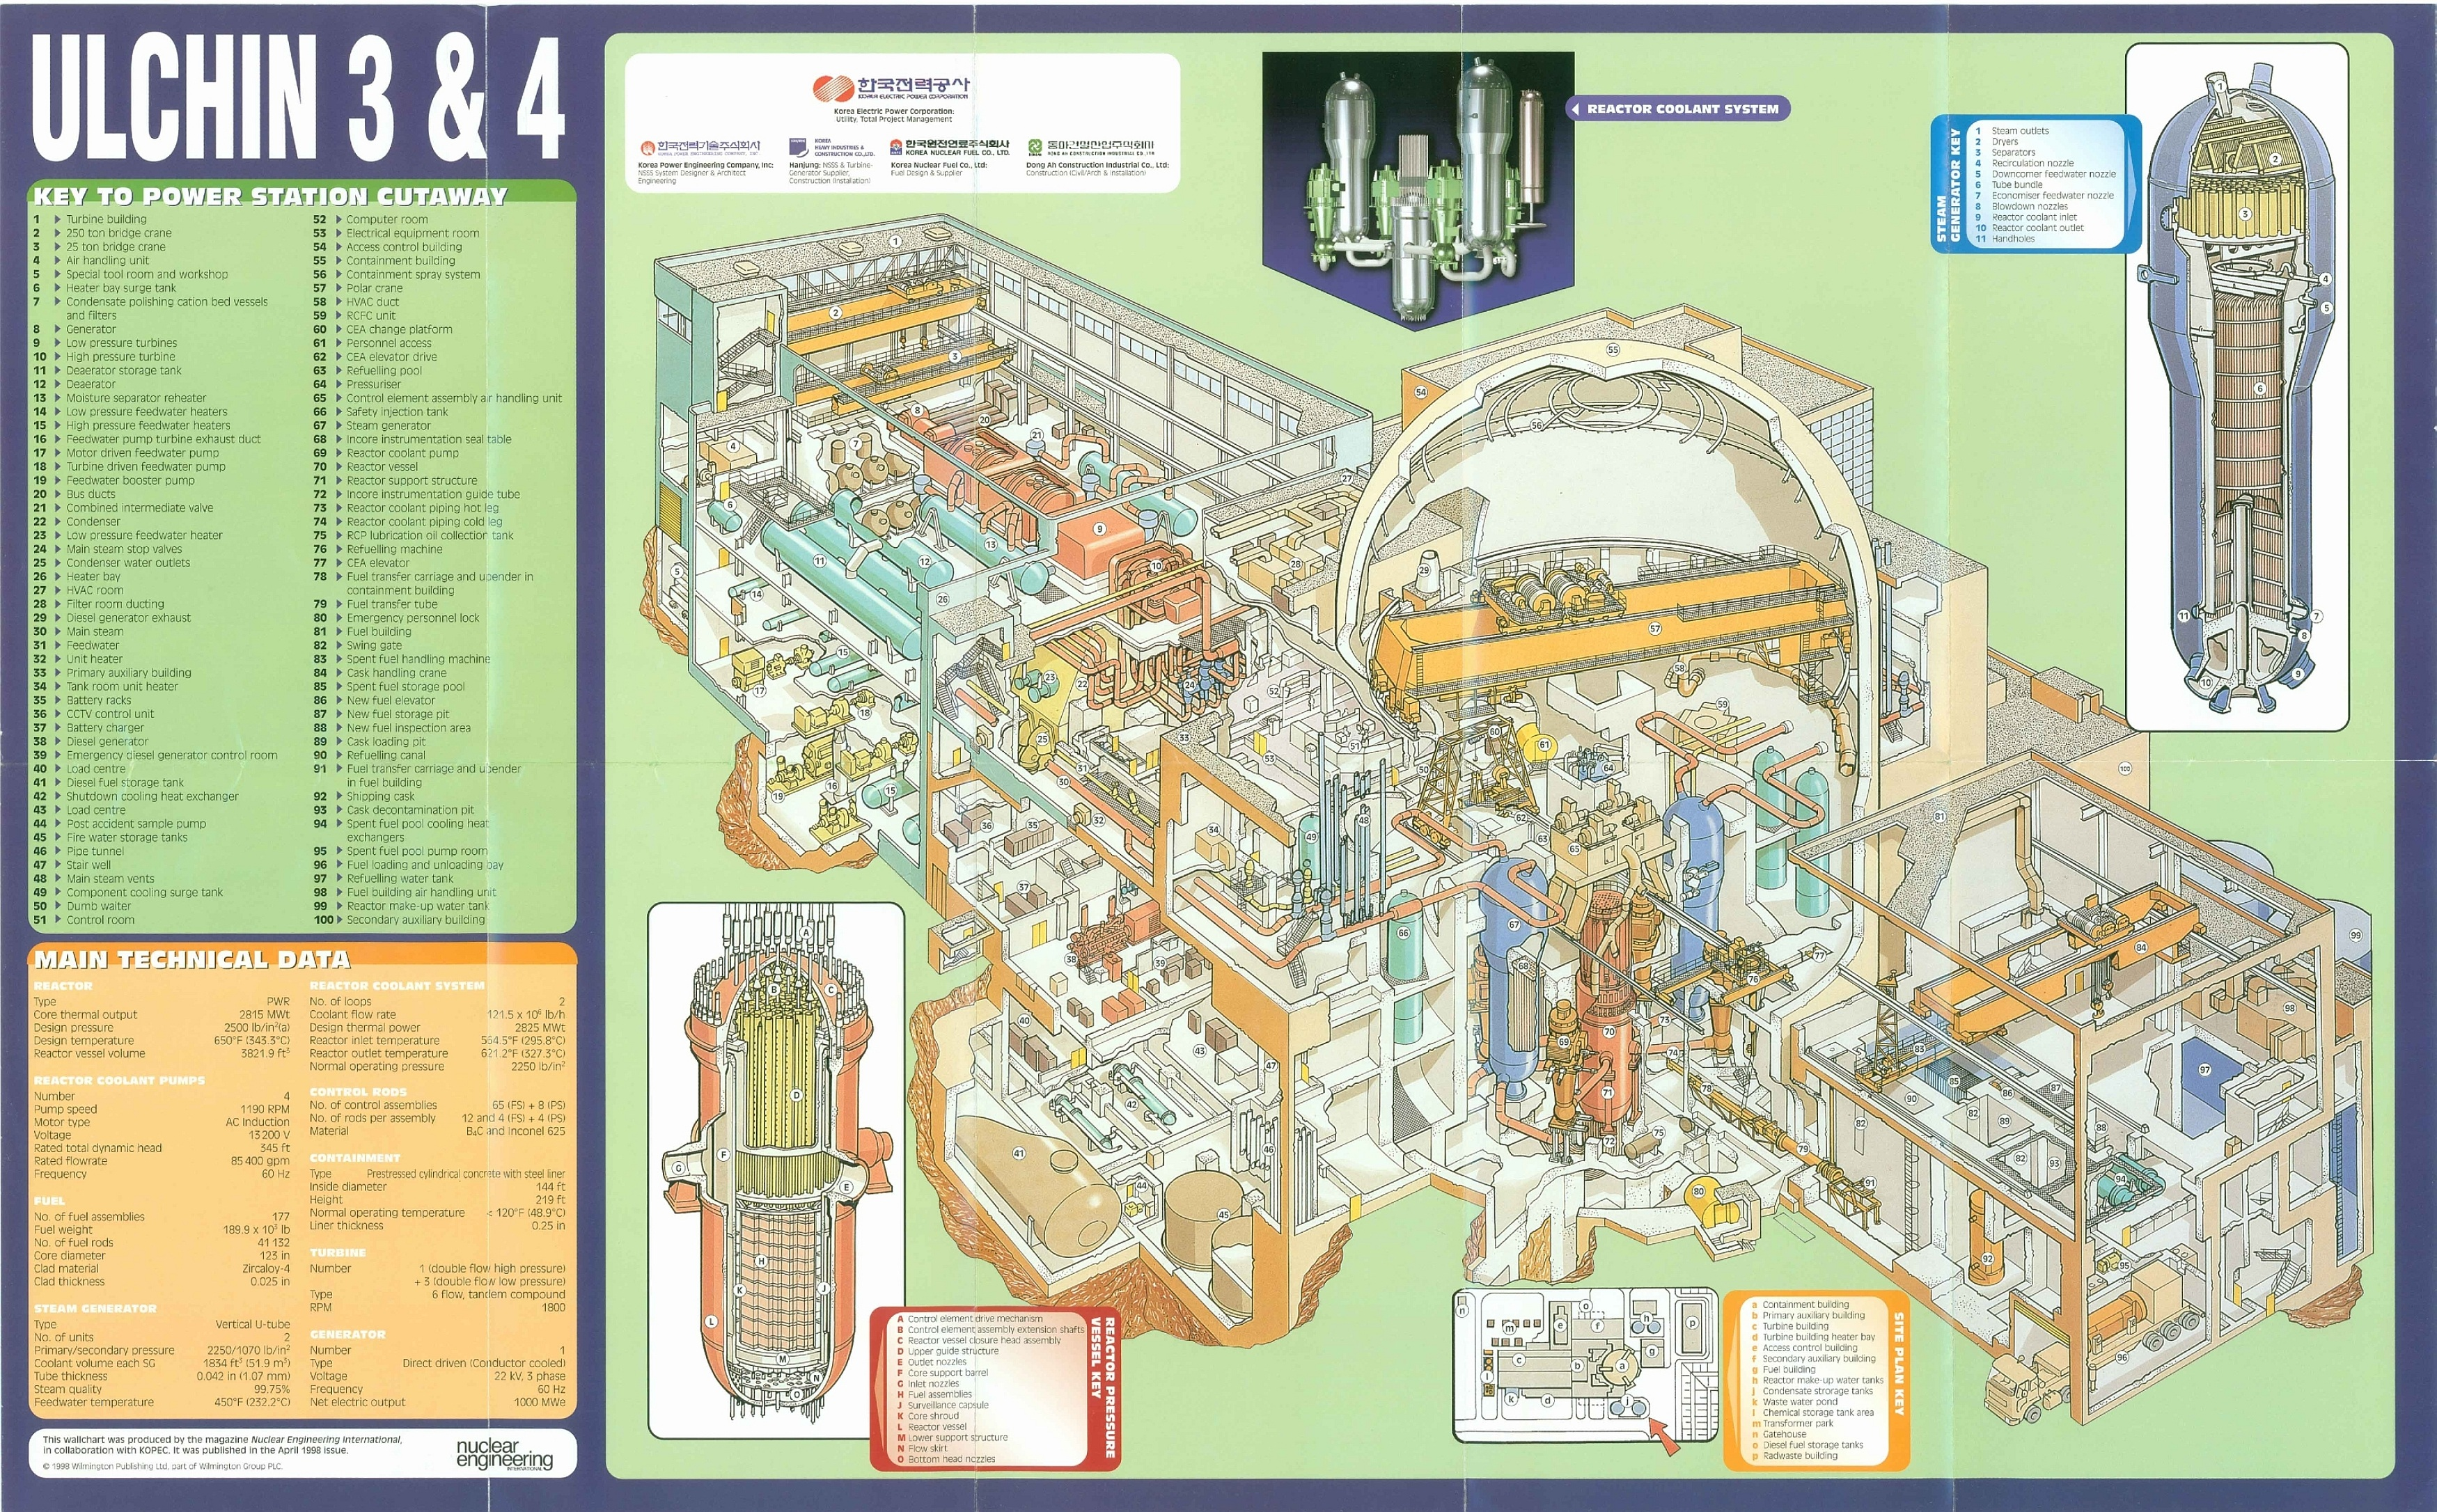 Title Sizewell B PWR Creator Nuclear Engineering International Subject Nuclear reactors -- Drawings Description The World's Reactors, No. 83, Sizewell B PWR, Sizewell, Suffolk, UK. Wall chart insert, Nuclear Engineering, December 1982